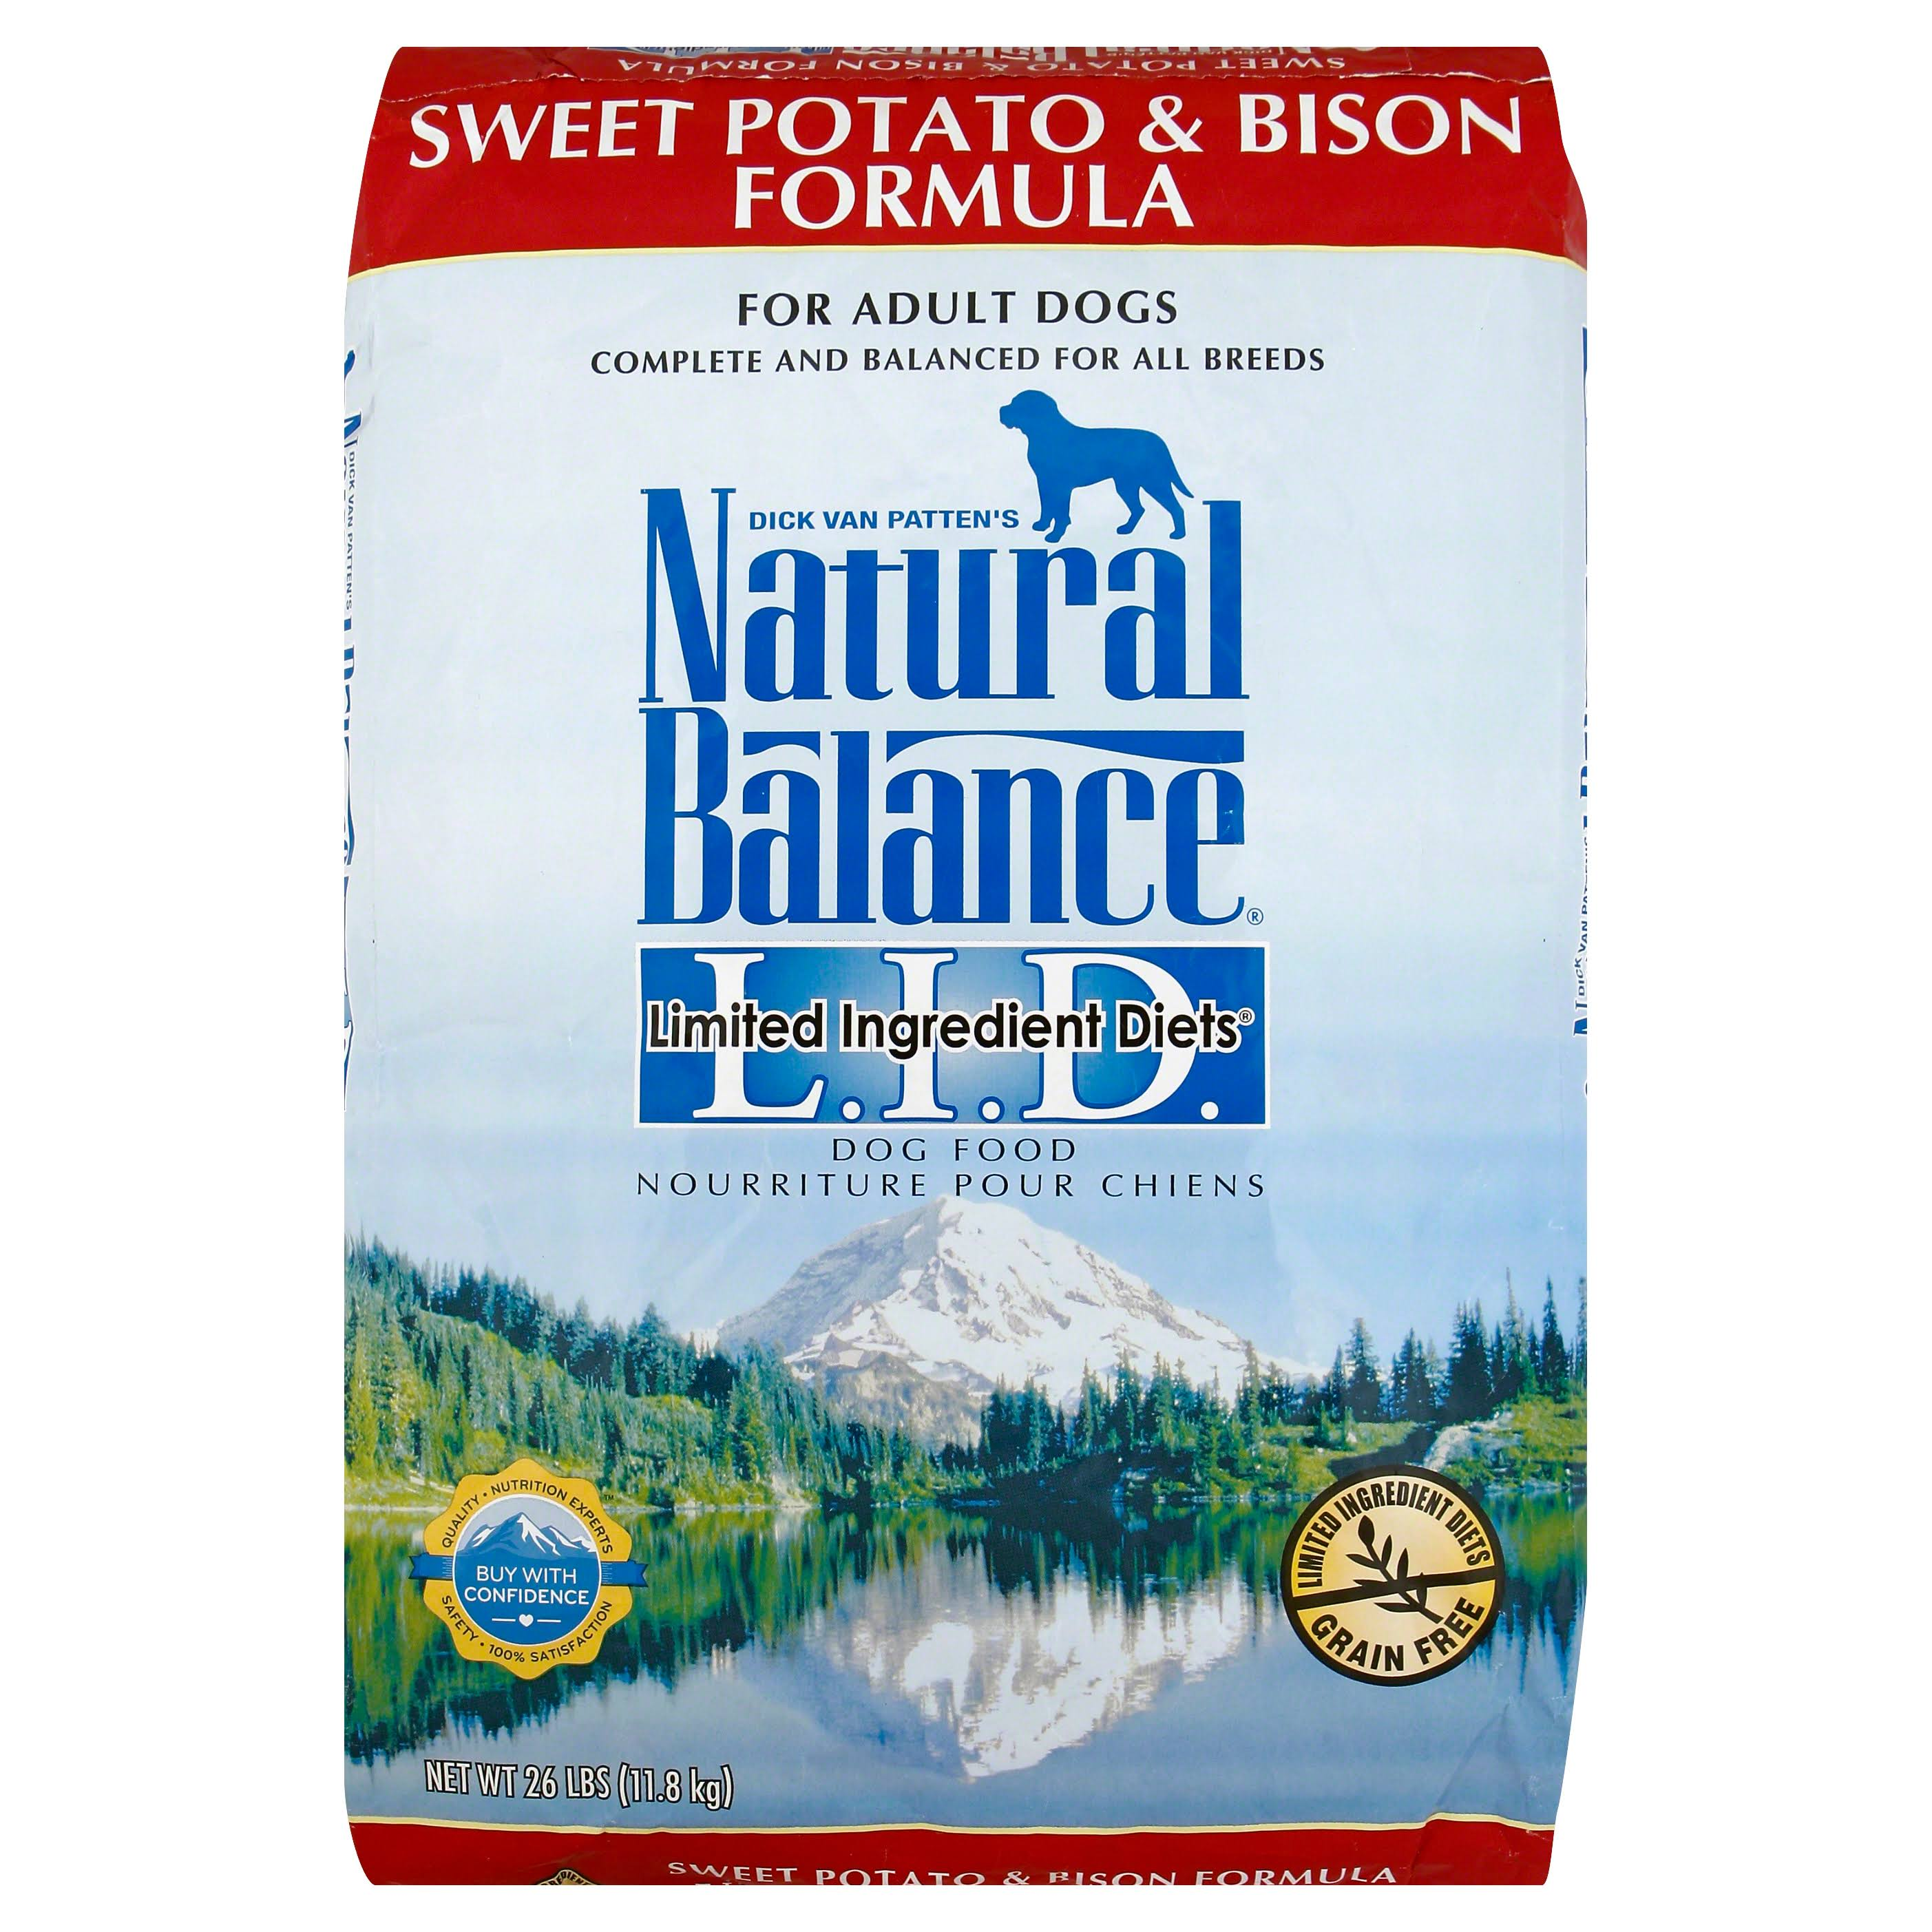 Natural Balance Limited Ingredient Diets Dog Food - Sweet Potato and Bison Formula, Dry, 26lbs